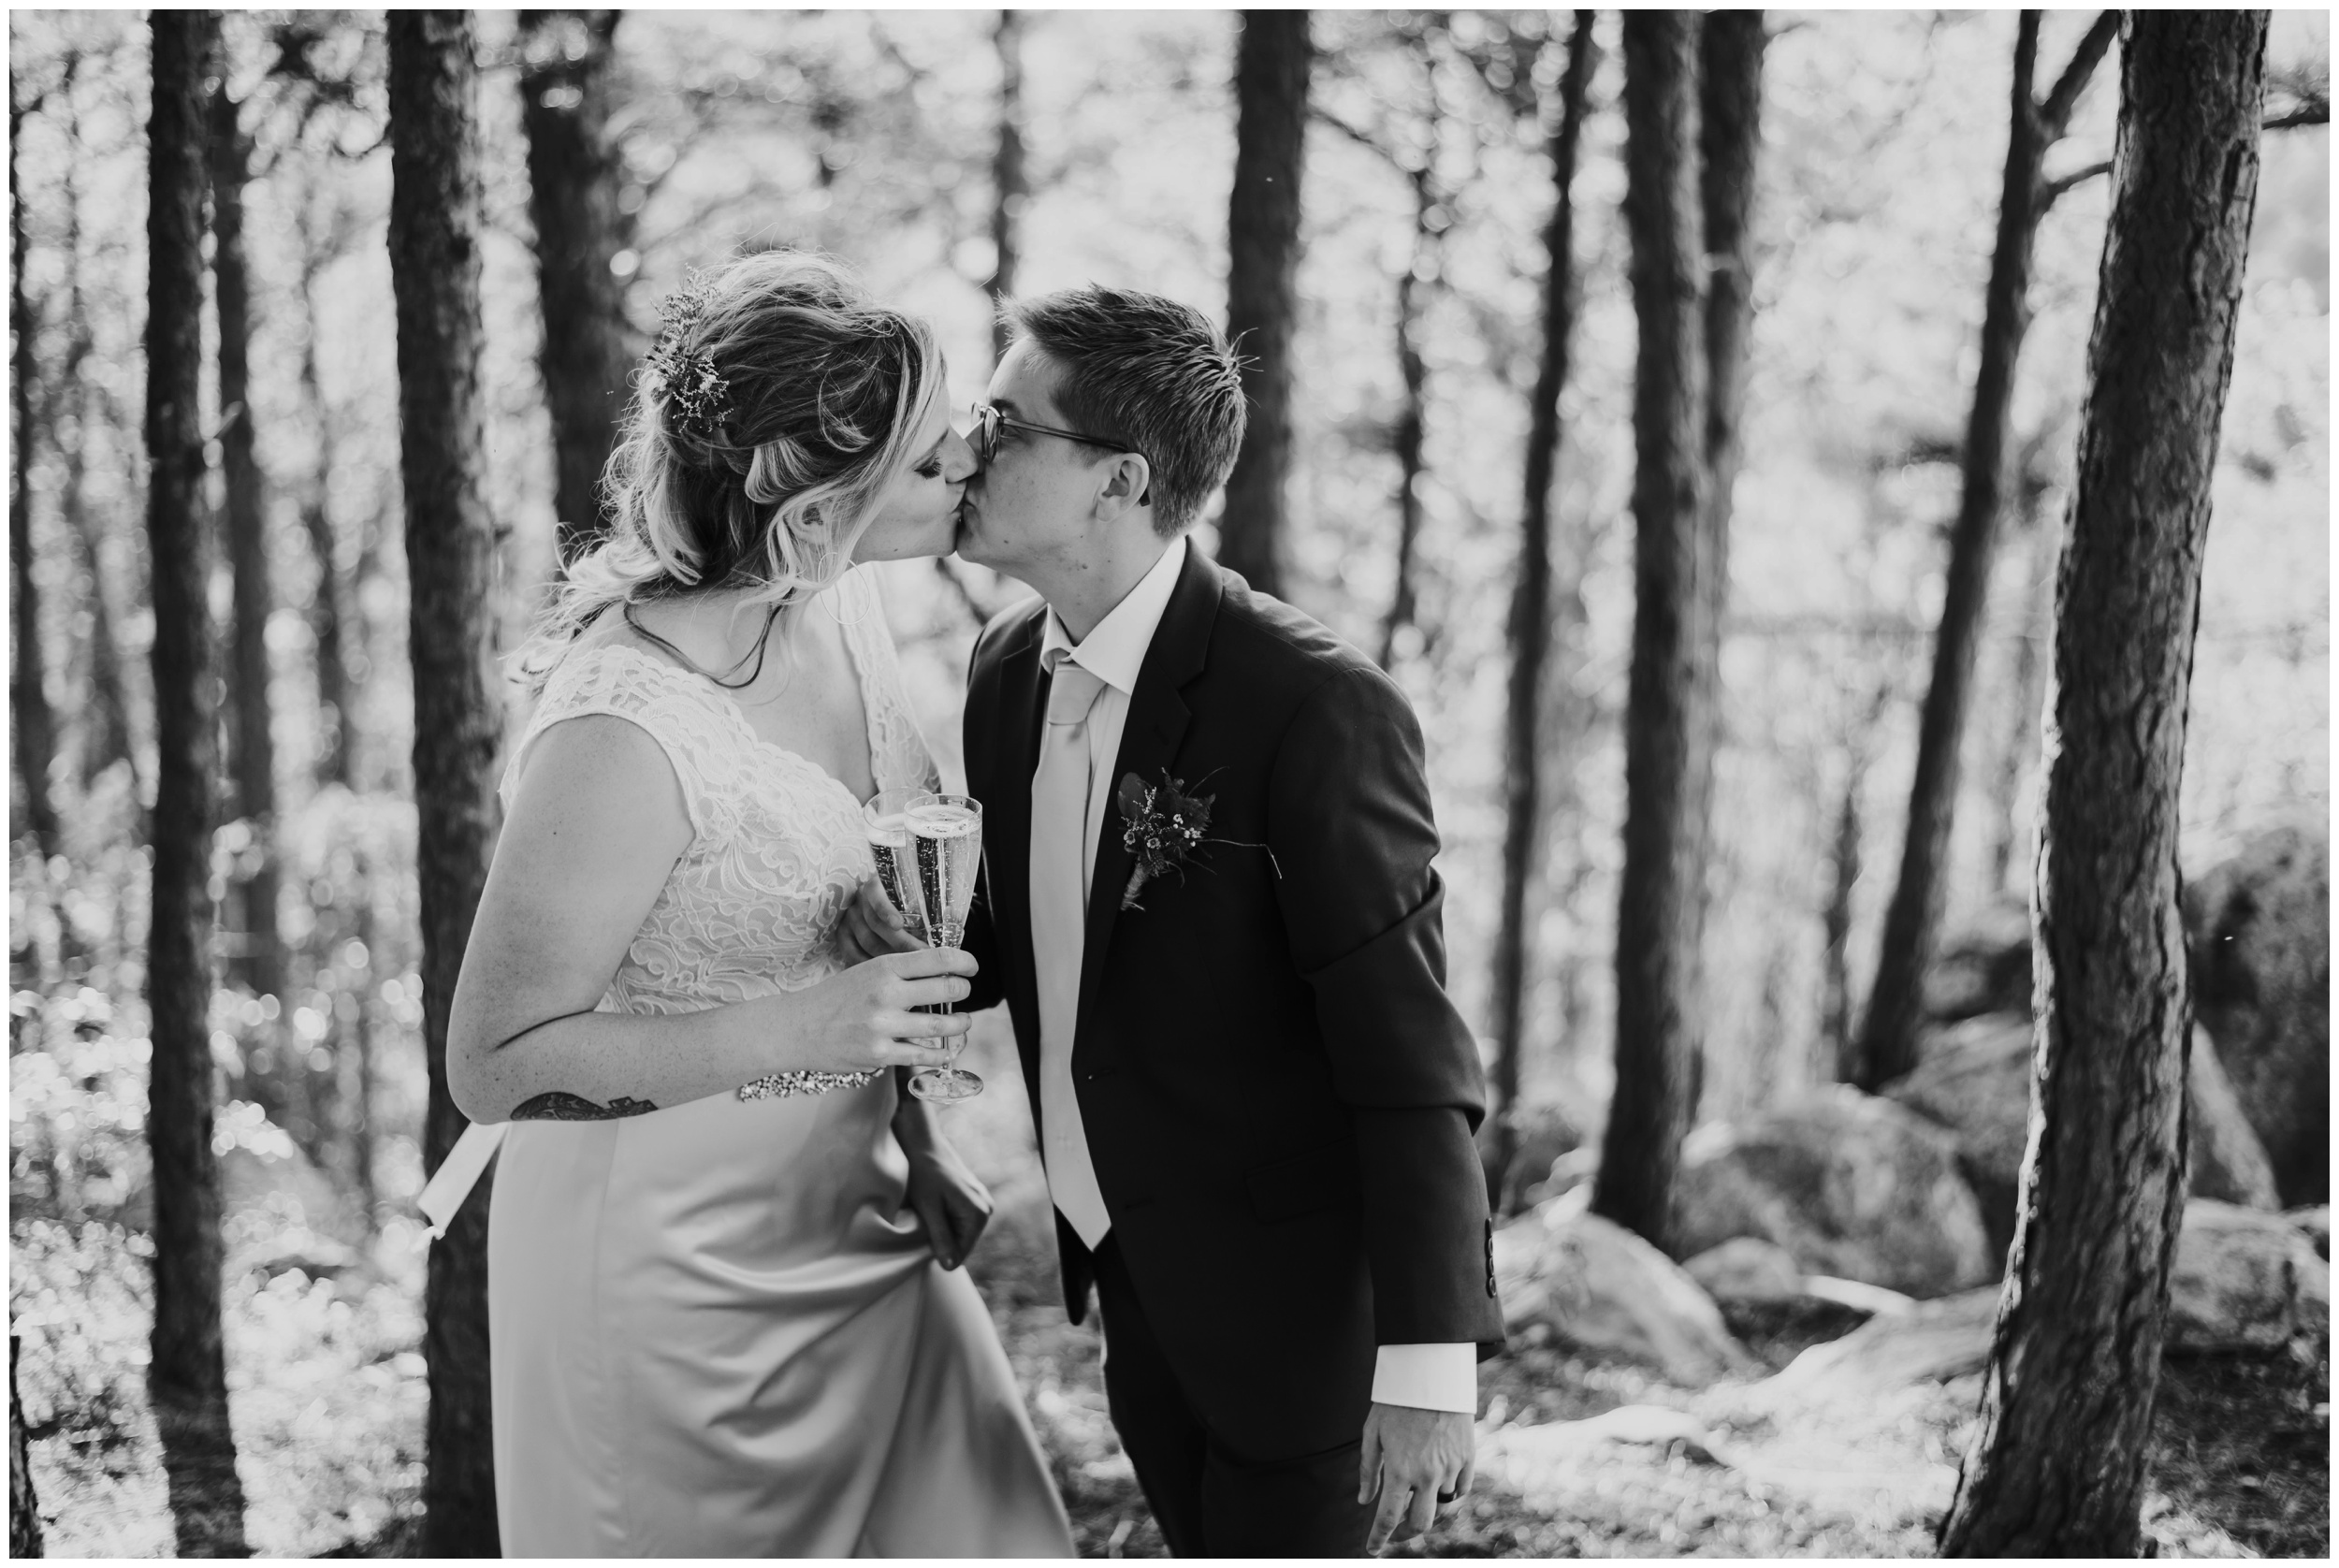 Couple kissing after eloping in the woods roanoke | www.riversandroadsphotography.com